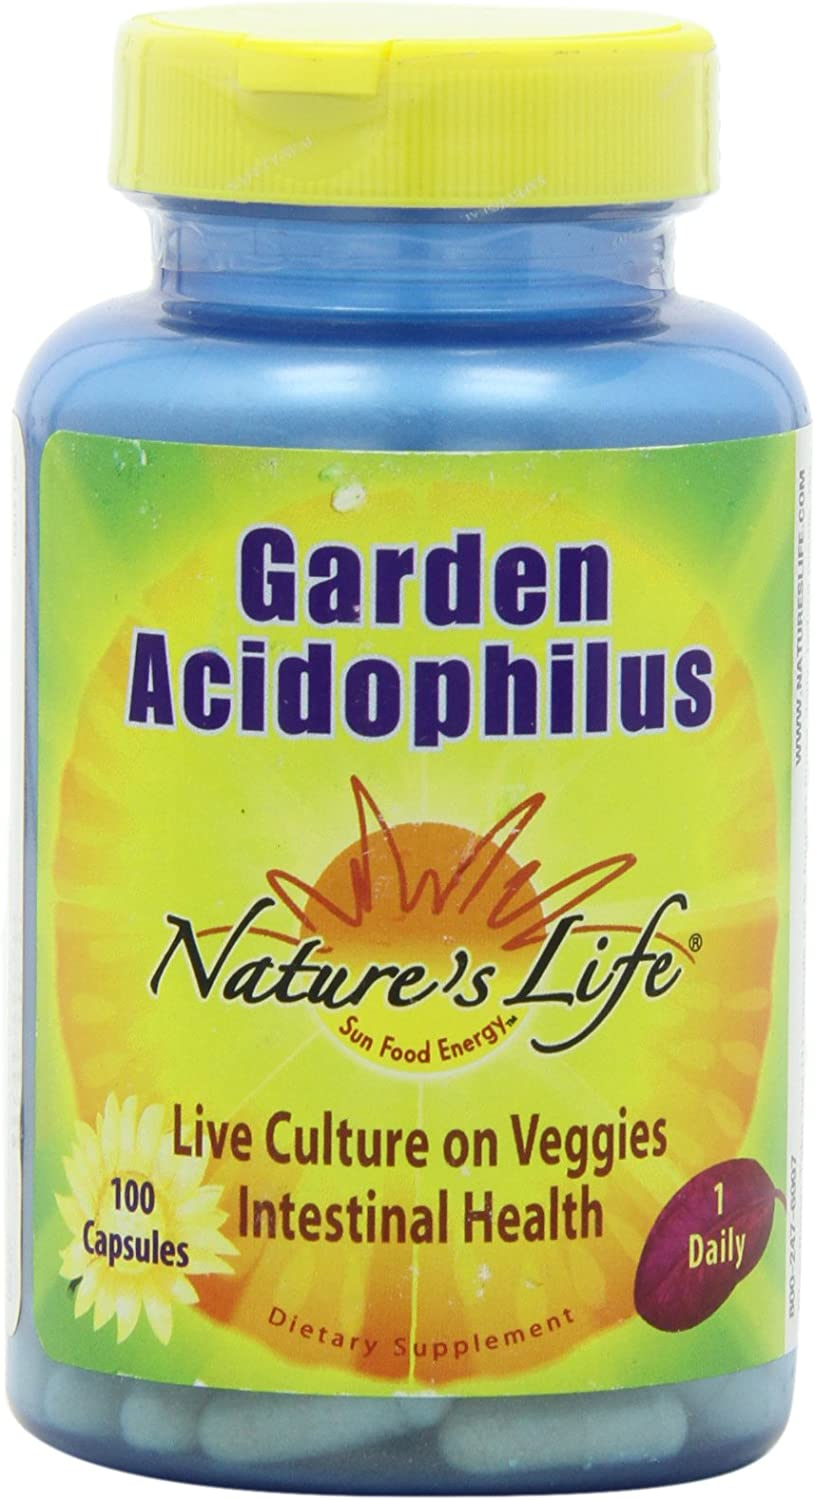 Nature's Life Acidophilus Capsules, Garden, 500 Mg, 100 Count